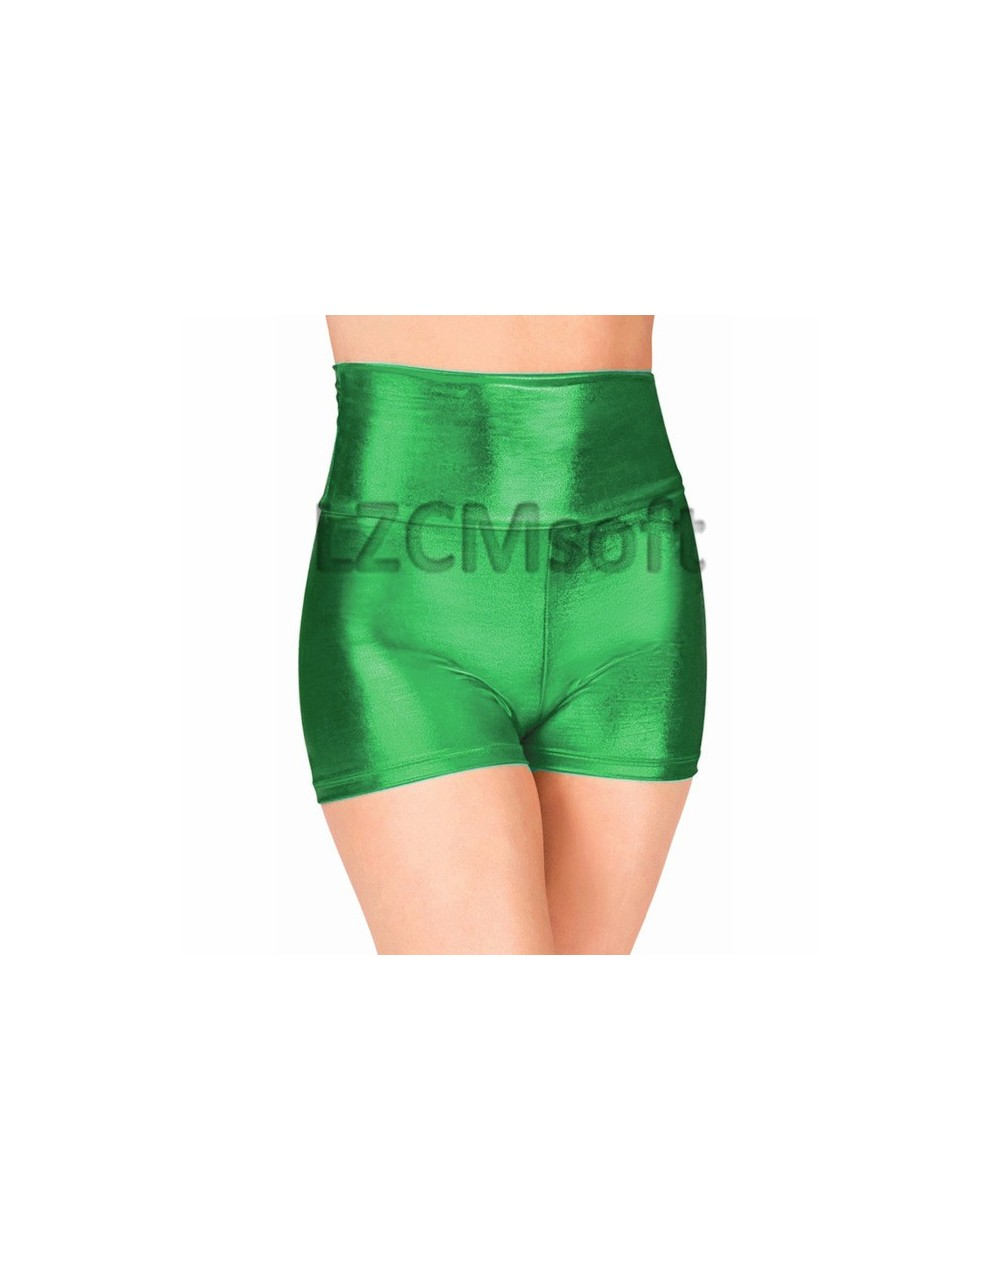 Adult Fuchsia High Waisted Dance Shorts Sexy Wet Look Skinny Rave Booty Stage Performance Shorts Metallic Underpants - Green...